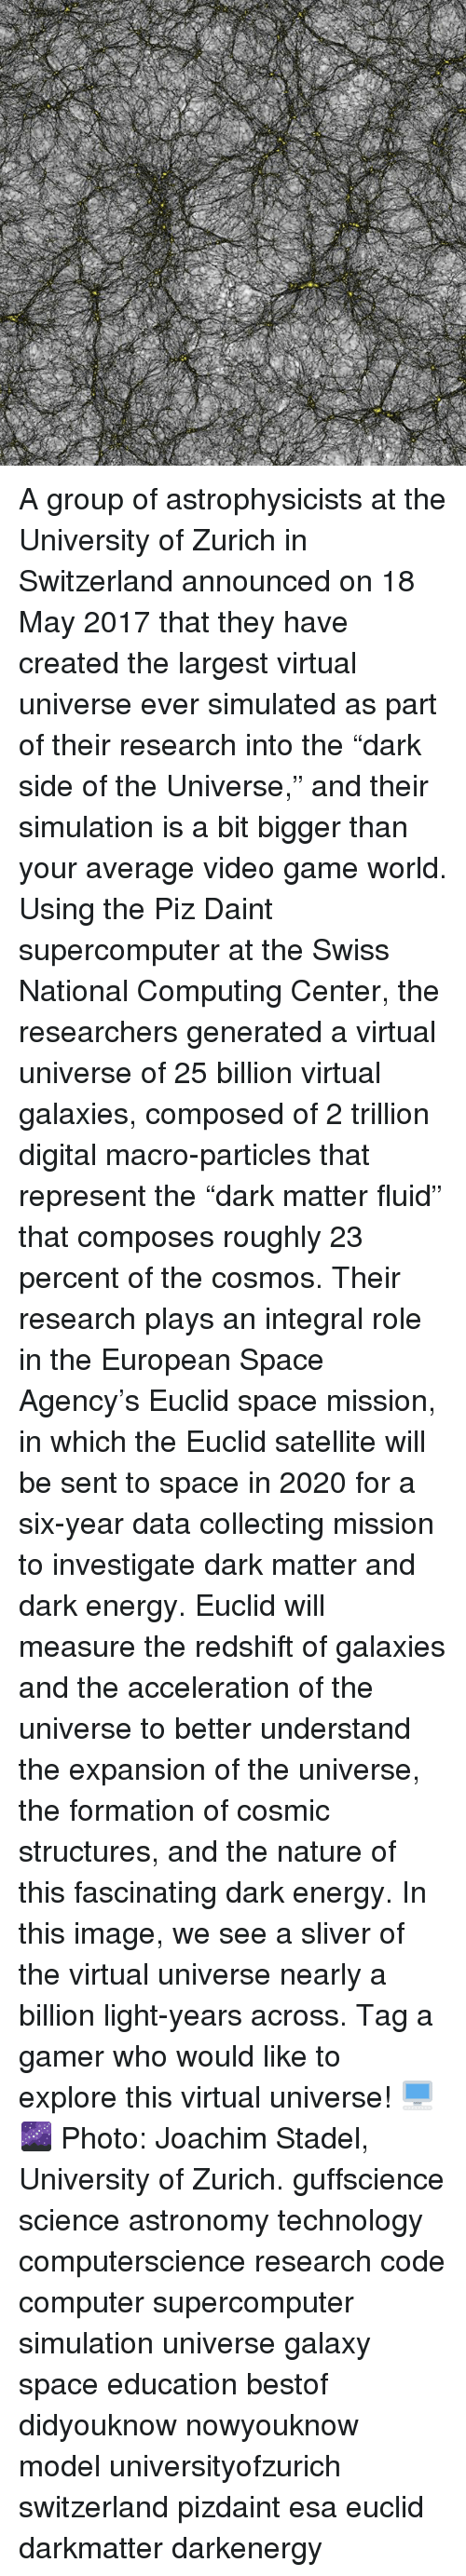 """Energy, Memes, and Formation: A group of astrophysicists at the University of Zurich in Switzerland announced on 18 May 2017 that they have created the largest virtual universe ever simulated as part of their research into the """"dark side of the Universe,"""" and their simulation is a bit bigger than your average video game world. Using the Piz Daint supercomputer at the Swiss National Computing Center, the researchers generated a virtual universe of 25 billion virtual galaxies, composed of 2 trillion digital macro-particles that represent the """"dark matter fluid"""" that composes roughly 23 percent of the cosmos. Their research plays an integral role in the European Space Agency's Euclid space mission, in which the Euclid satellite will be sent to space in 2020 for a six-year data collecting mission to investigate dark matter and dark energy. Euclid will measure the redshift of galaxies and the acceleration of the universe to better understand the expansion of the universe, the formation of cosmic structures, and the nature of this fascinating dark energy. In this image, we see a sliver of the virtual universe nearly a billion light-years across. Tag a gamer who would like to explore this virtual universe! 🖥️🌌 Photo: Joachim Stadel, University of Zurich. guffscience science astronomy technology computerscience research code computer supercomputer simulation universe galaxy space education bestof didyouknow nowyouknow model universityofzurich switzerland pizdaint esa euclid darkmatter darkenergy"""